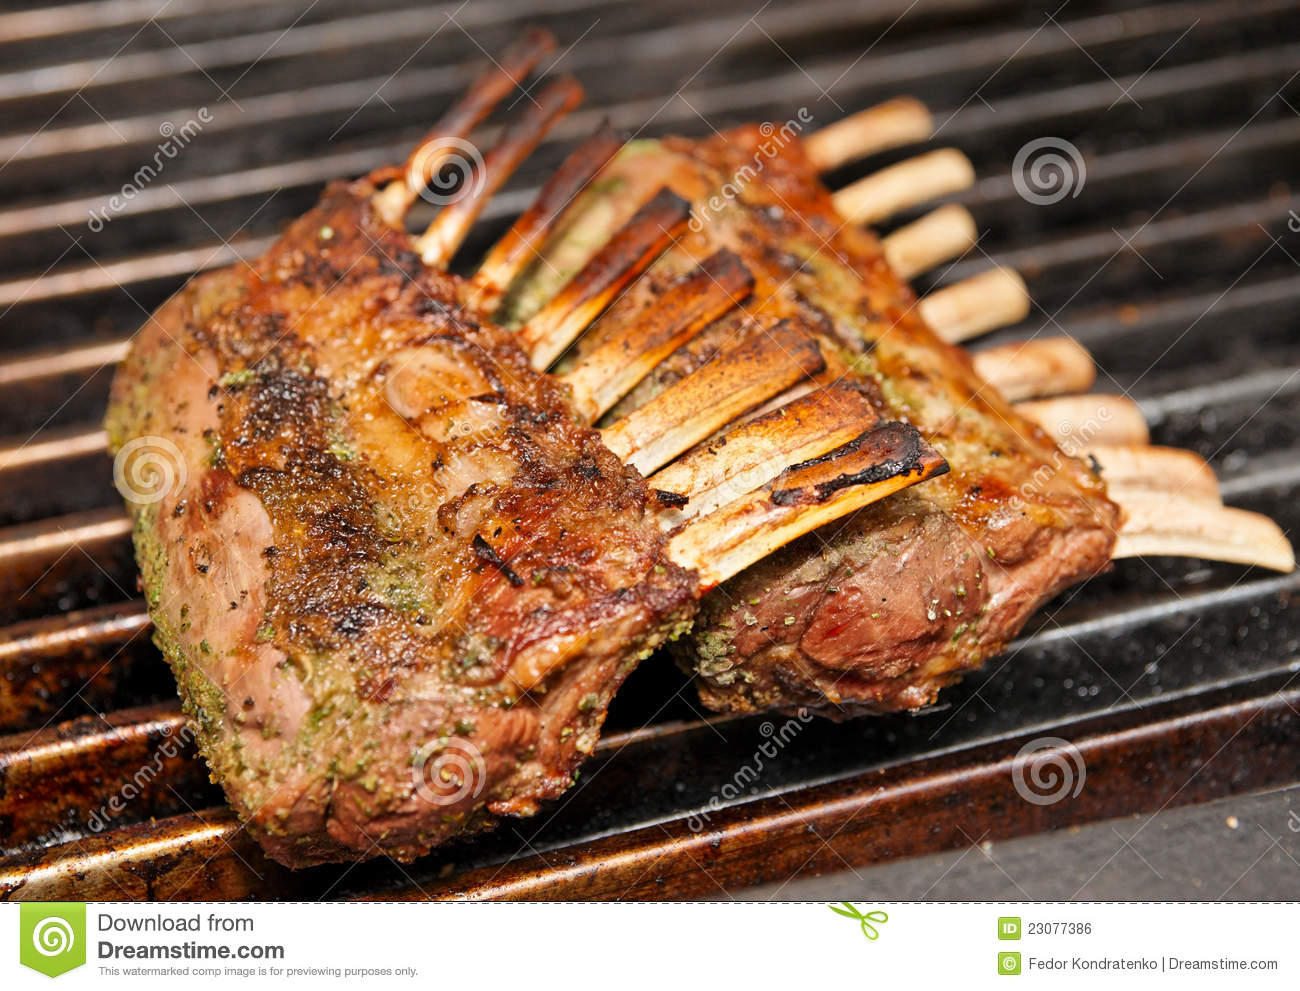 how to cook rack of lamb on grill